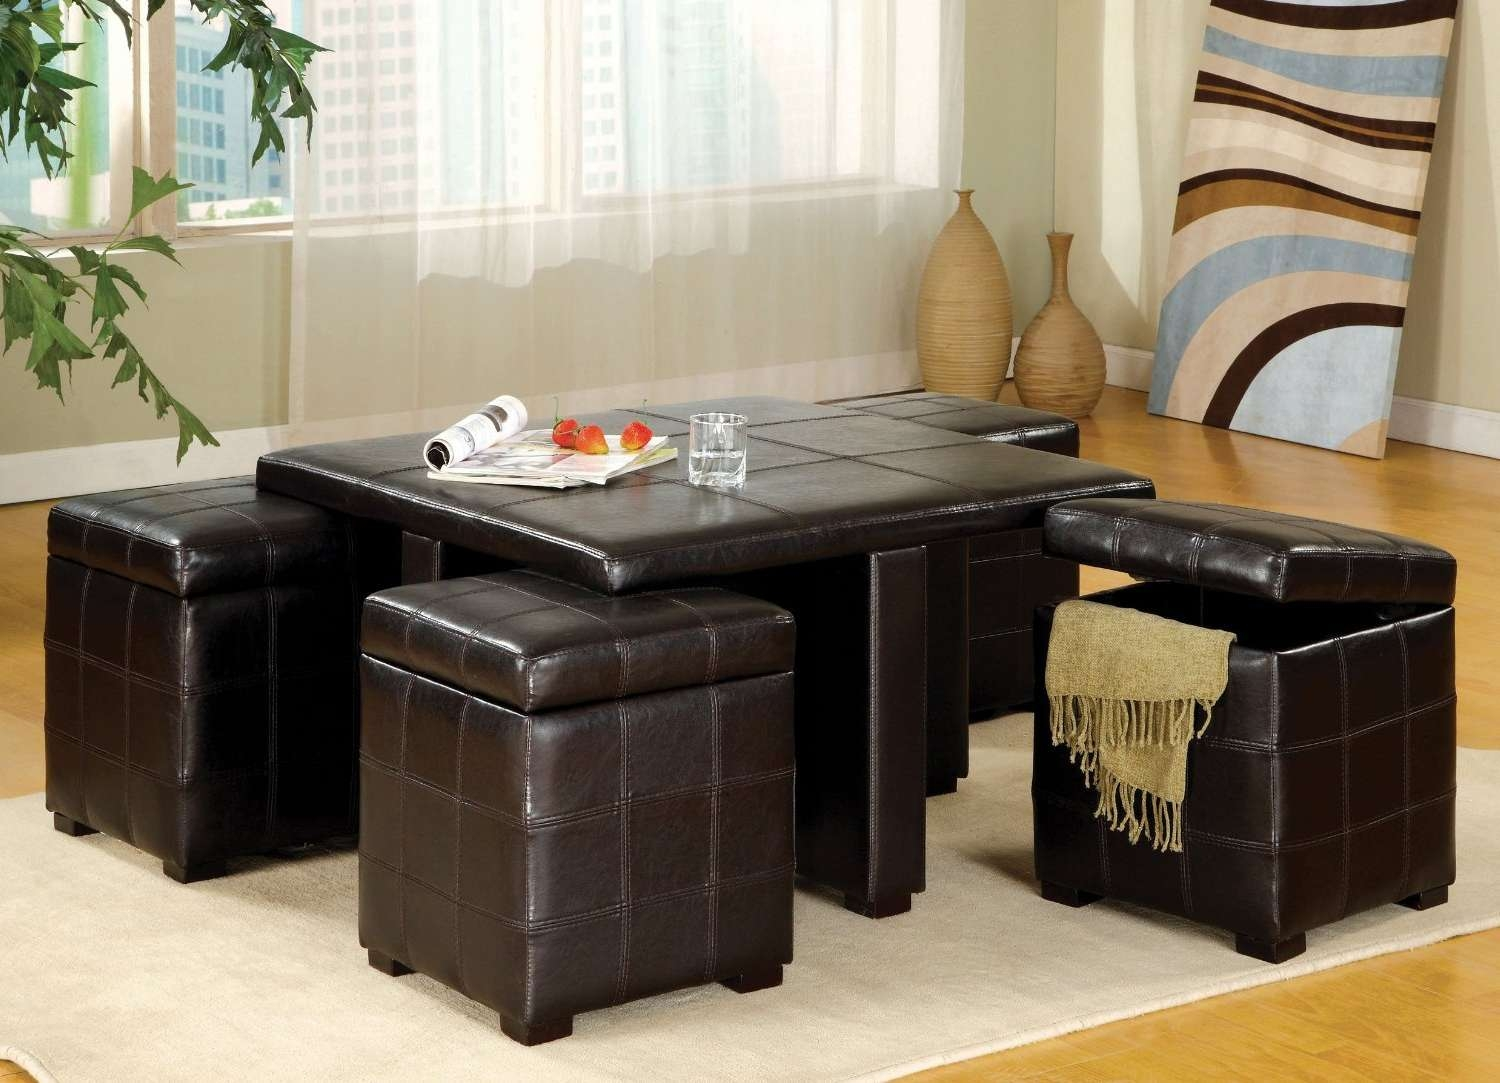 Most Recent Square Coffee Tables With Storage Cubes Pertaining To Square Coffee Table With Storage Cubes K / Thippo (View 17 of 20)